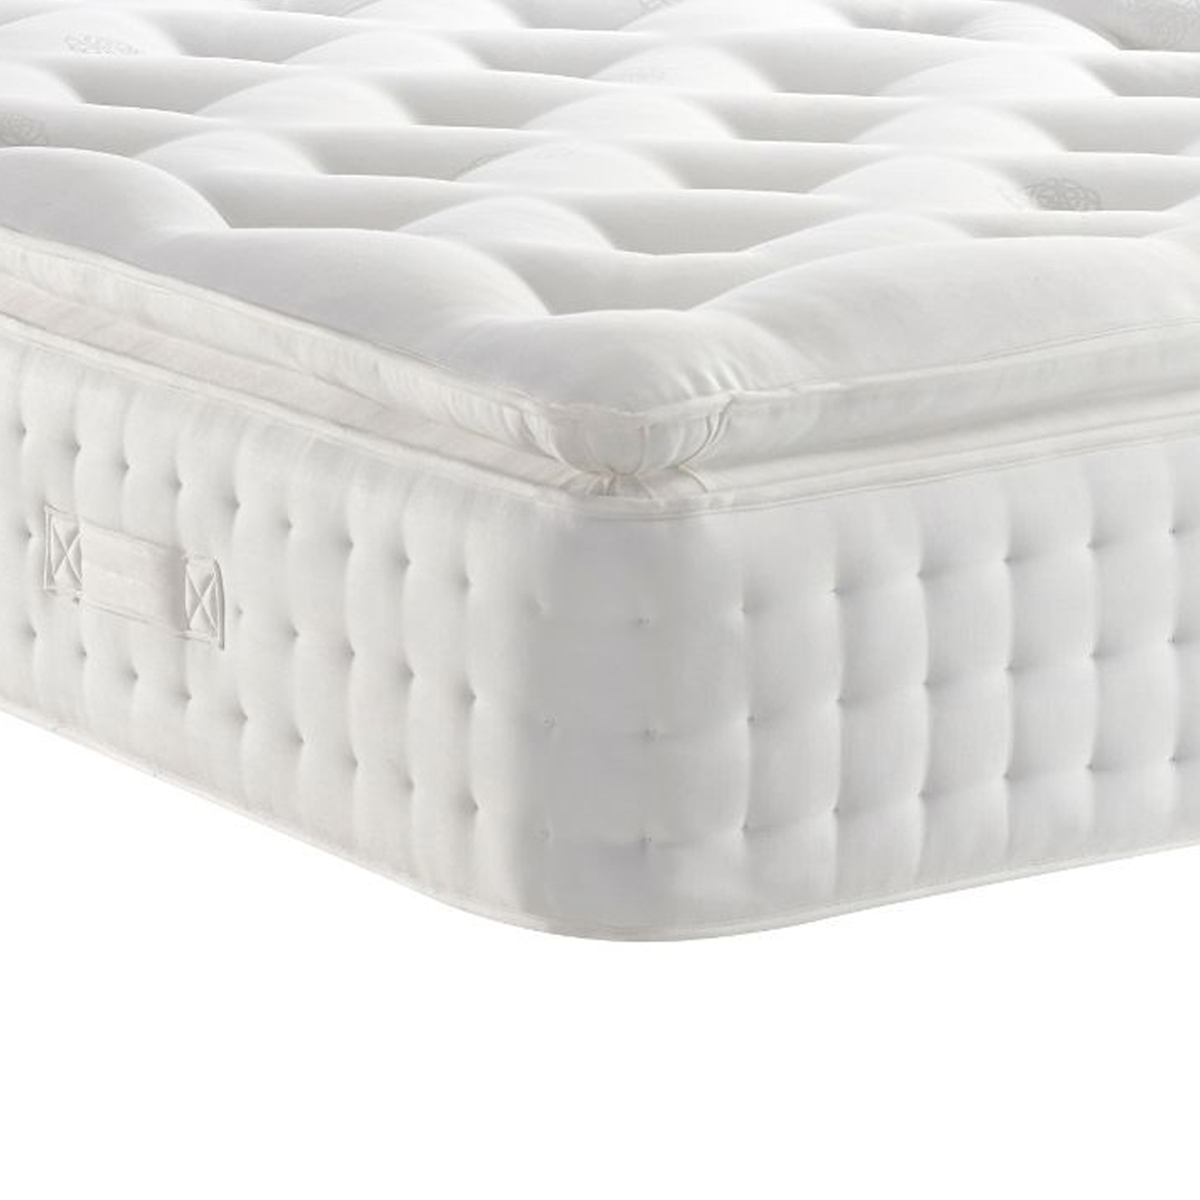 Nora White 2000 Pillow Top Spring Mattress Medium/Firm